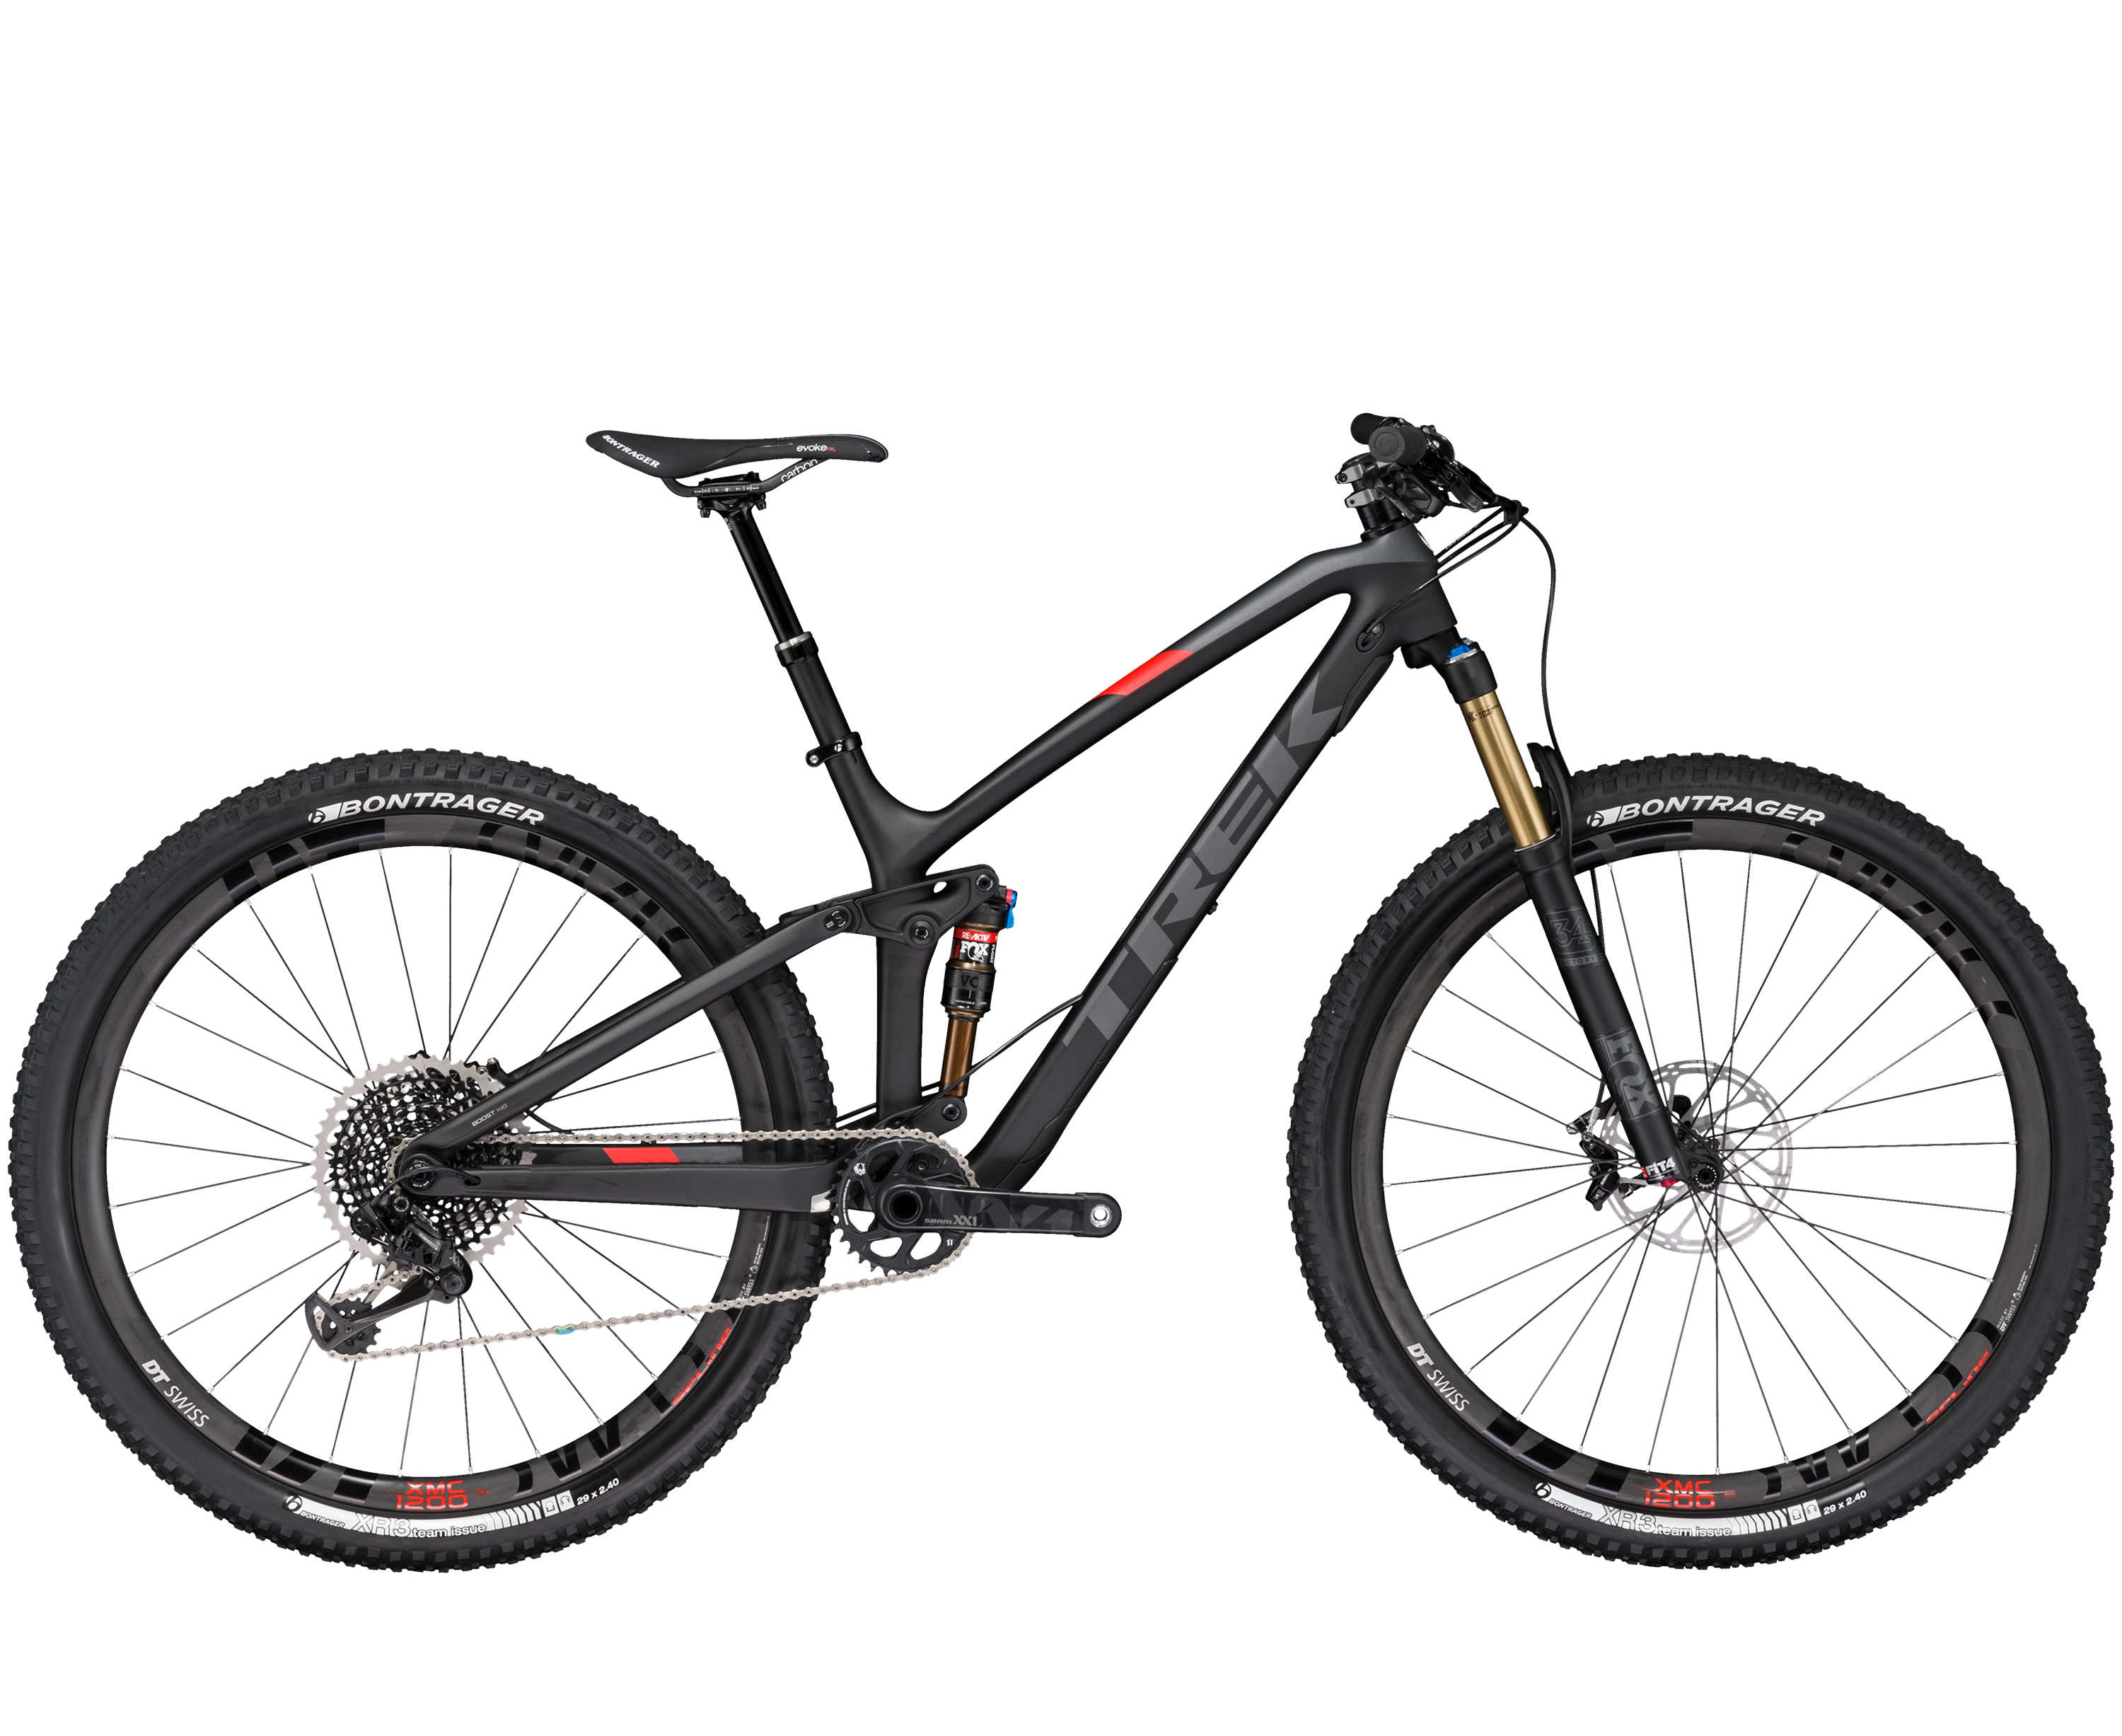 Trek Fuel EX 9.9 29 Matte Trek Black/Metallic Charcoal 2017